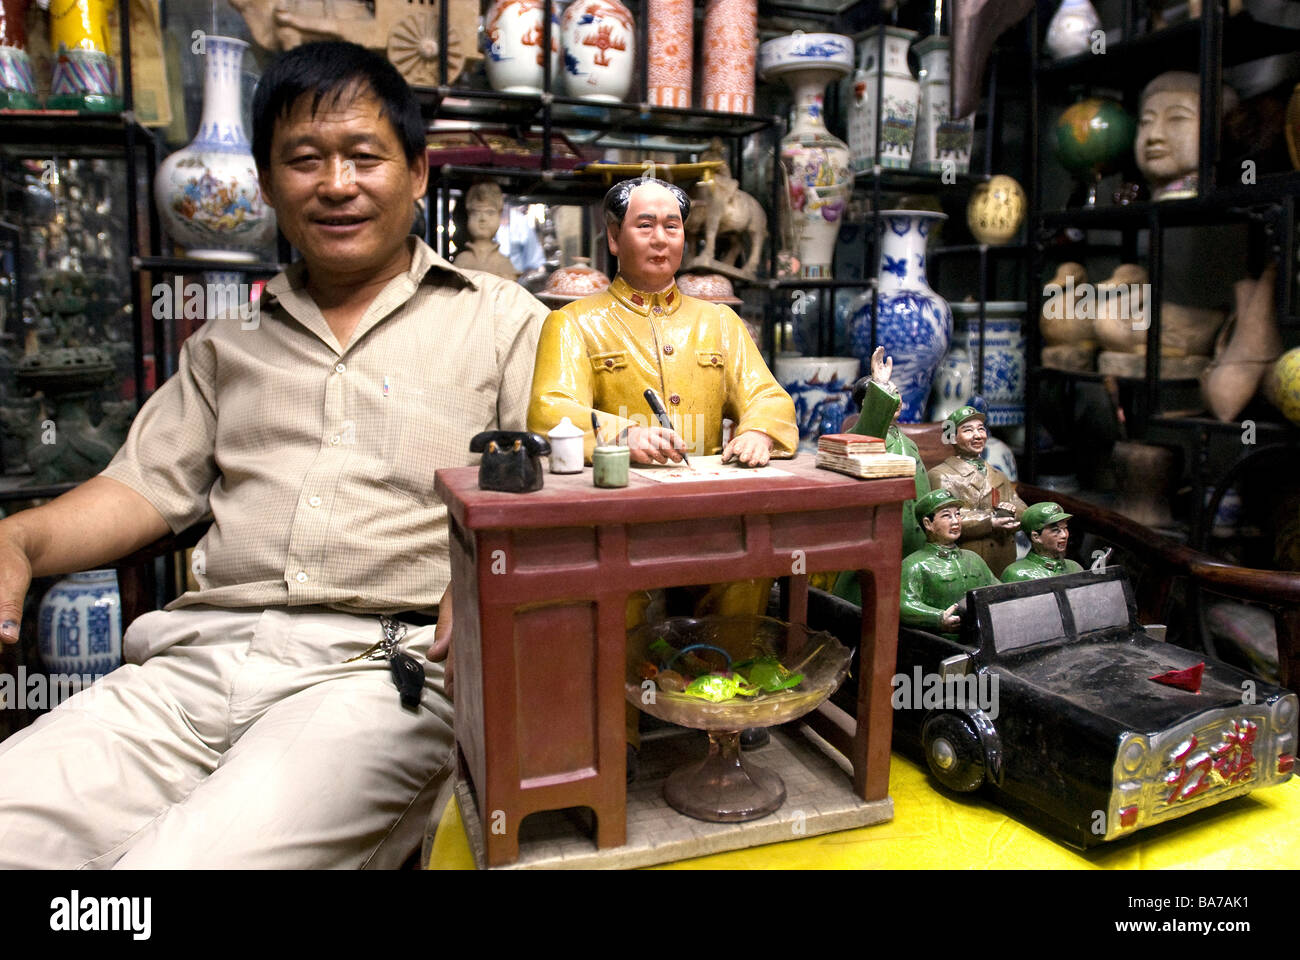 China, Beijing, selling objects whorshipping Mao Zedong on the antique dealer's street - Stock Image